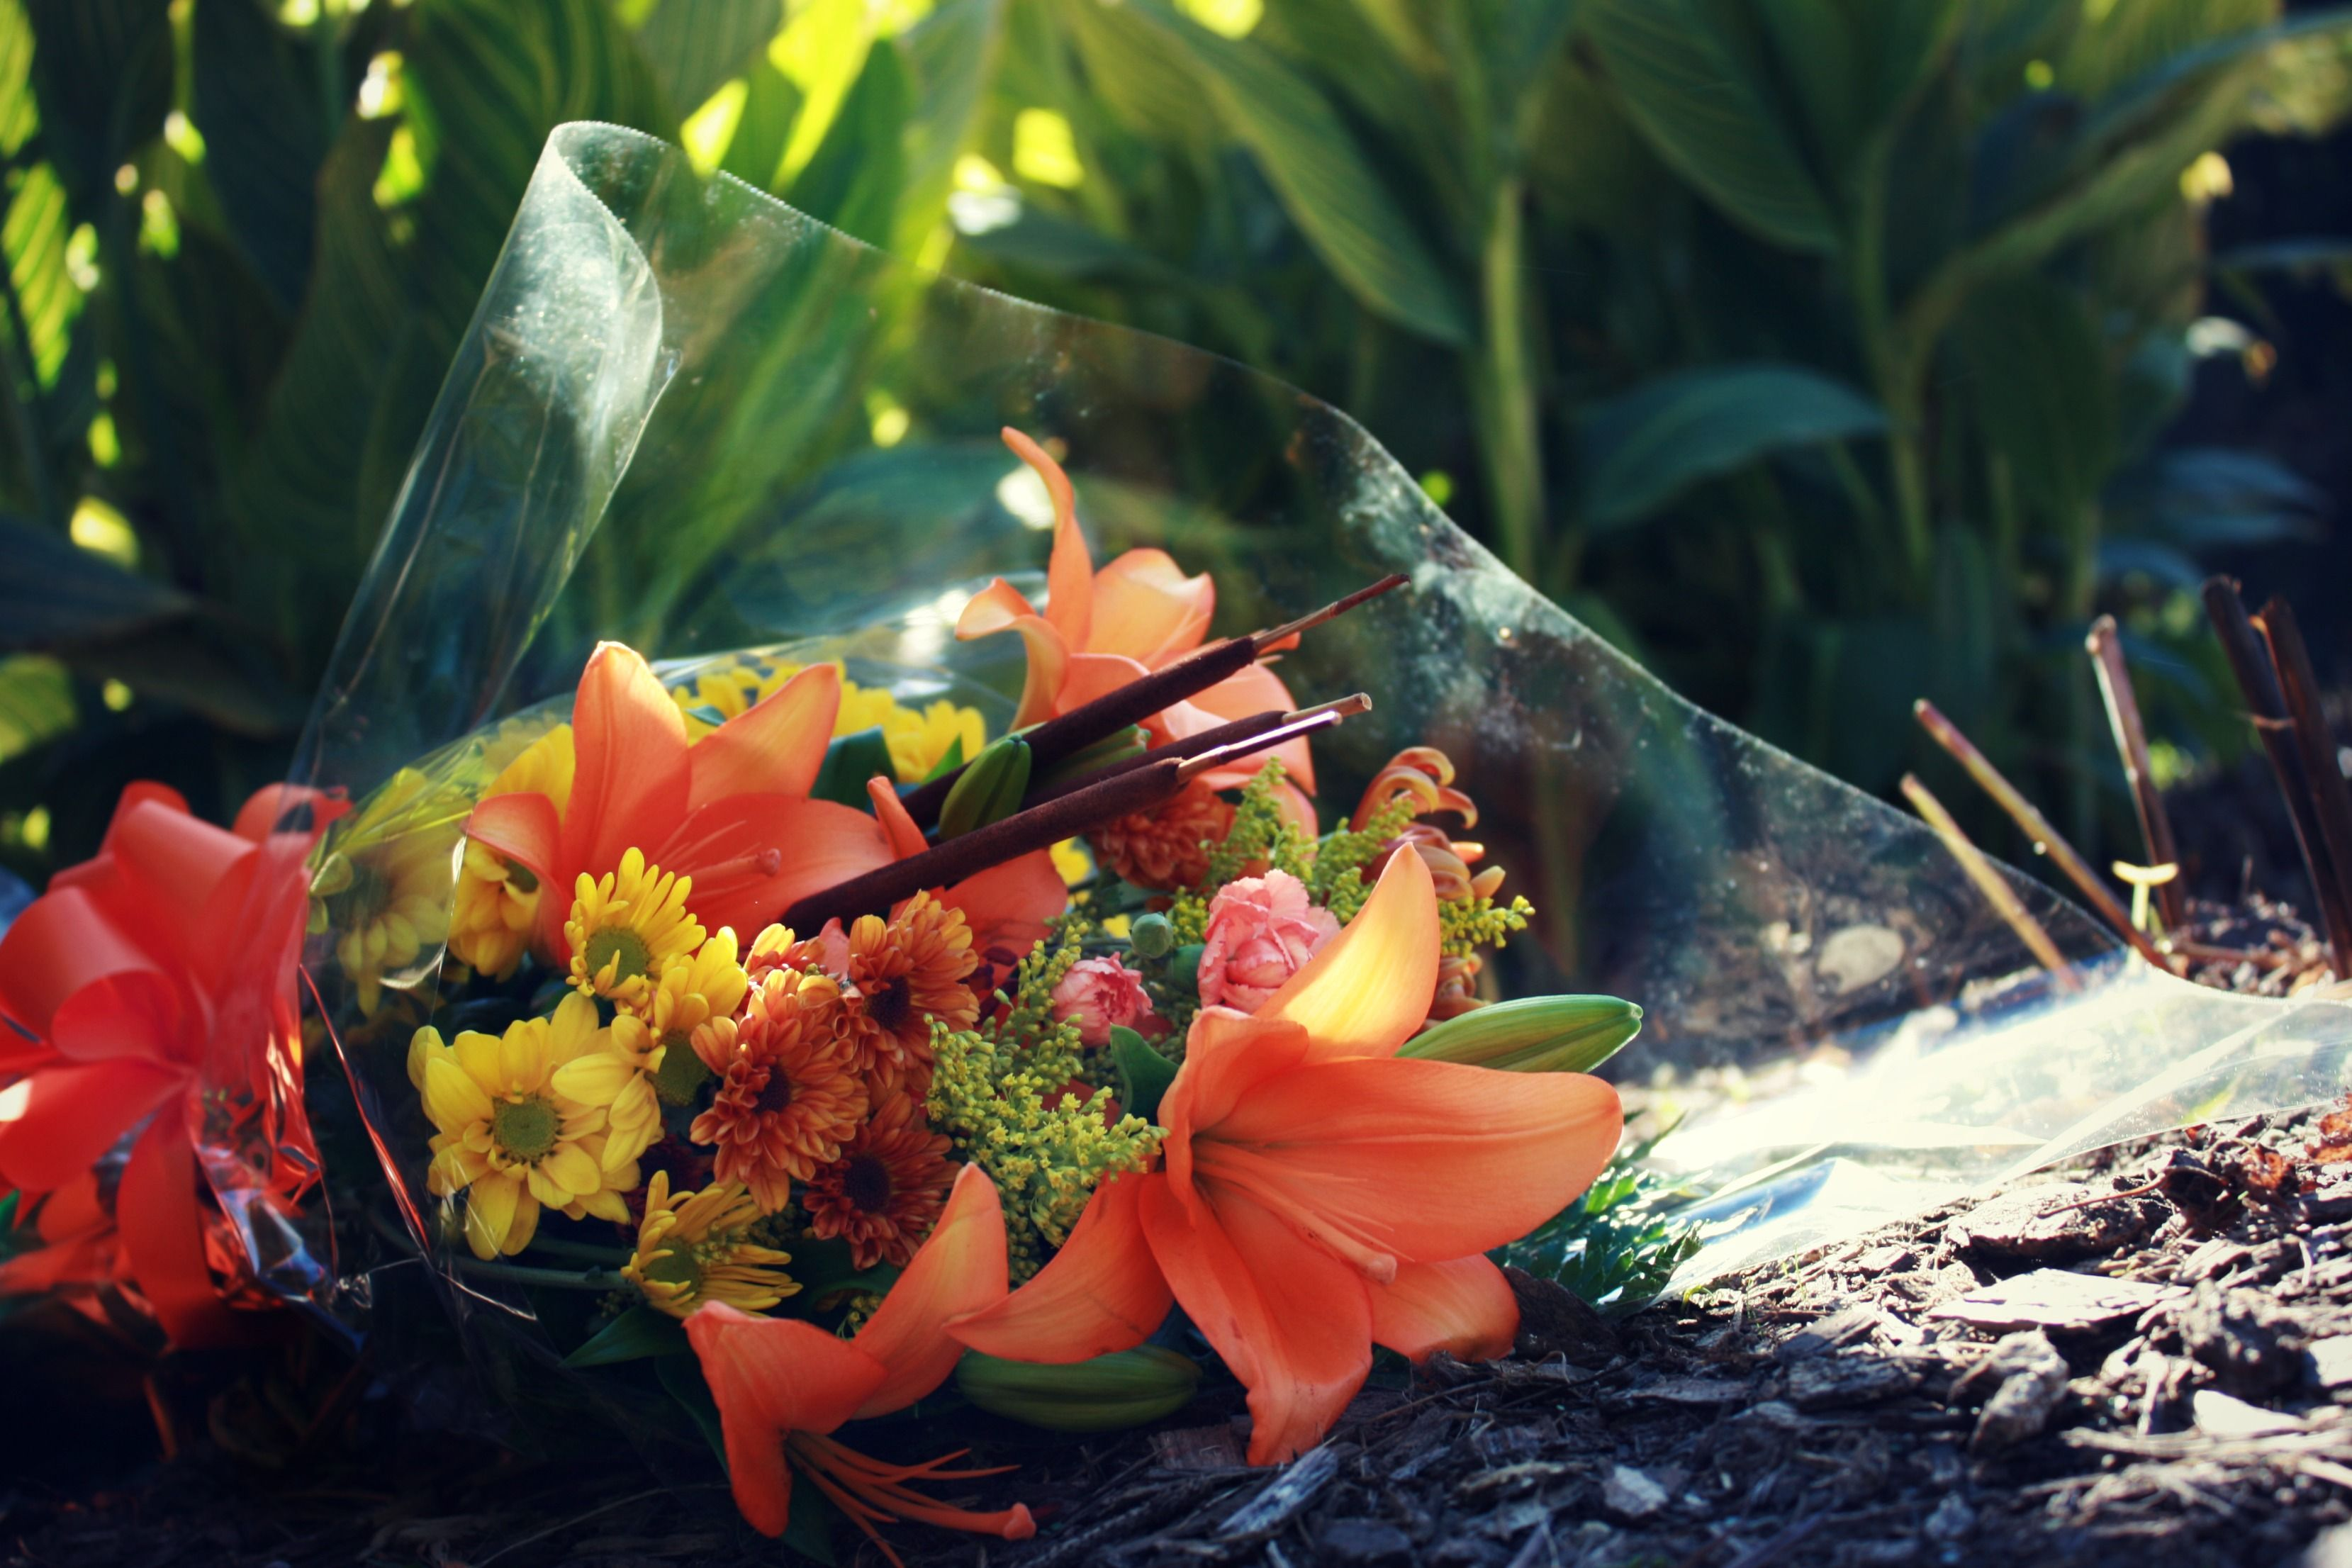 www.readysetpropose.com or 951-400-5683 for all your proposal needs in the Midwest and West Coast!   Proposal flowers, autumn flowers, autumn, flowers, bouquet, orange flowers, orange bouquet, cat tails